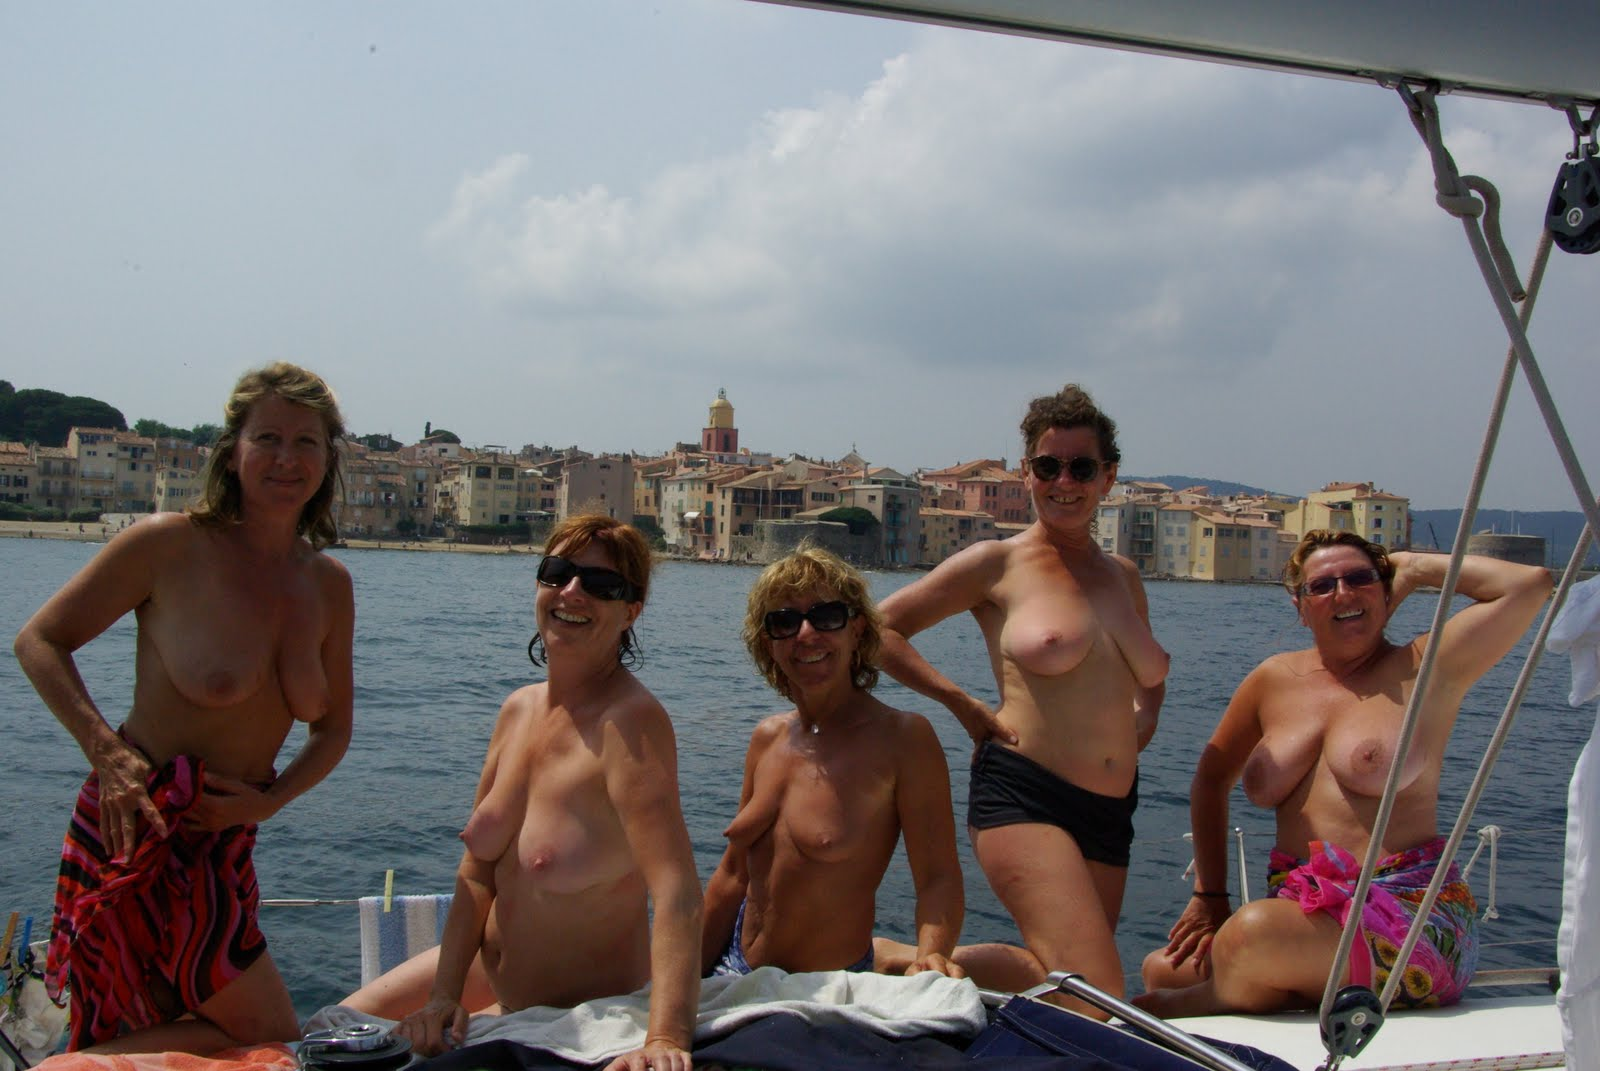 Younger chick Naked on a boat hot